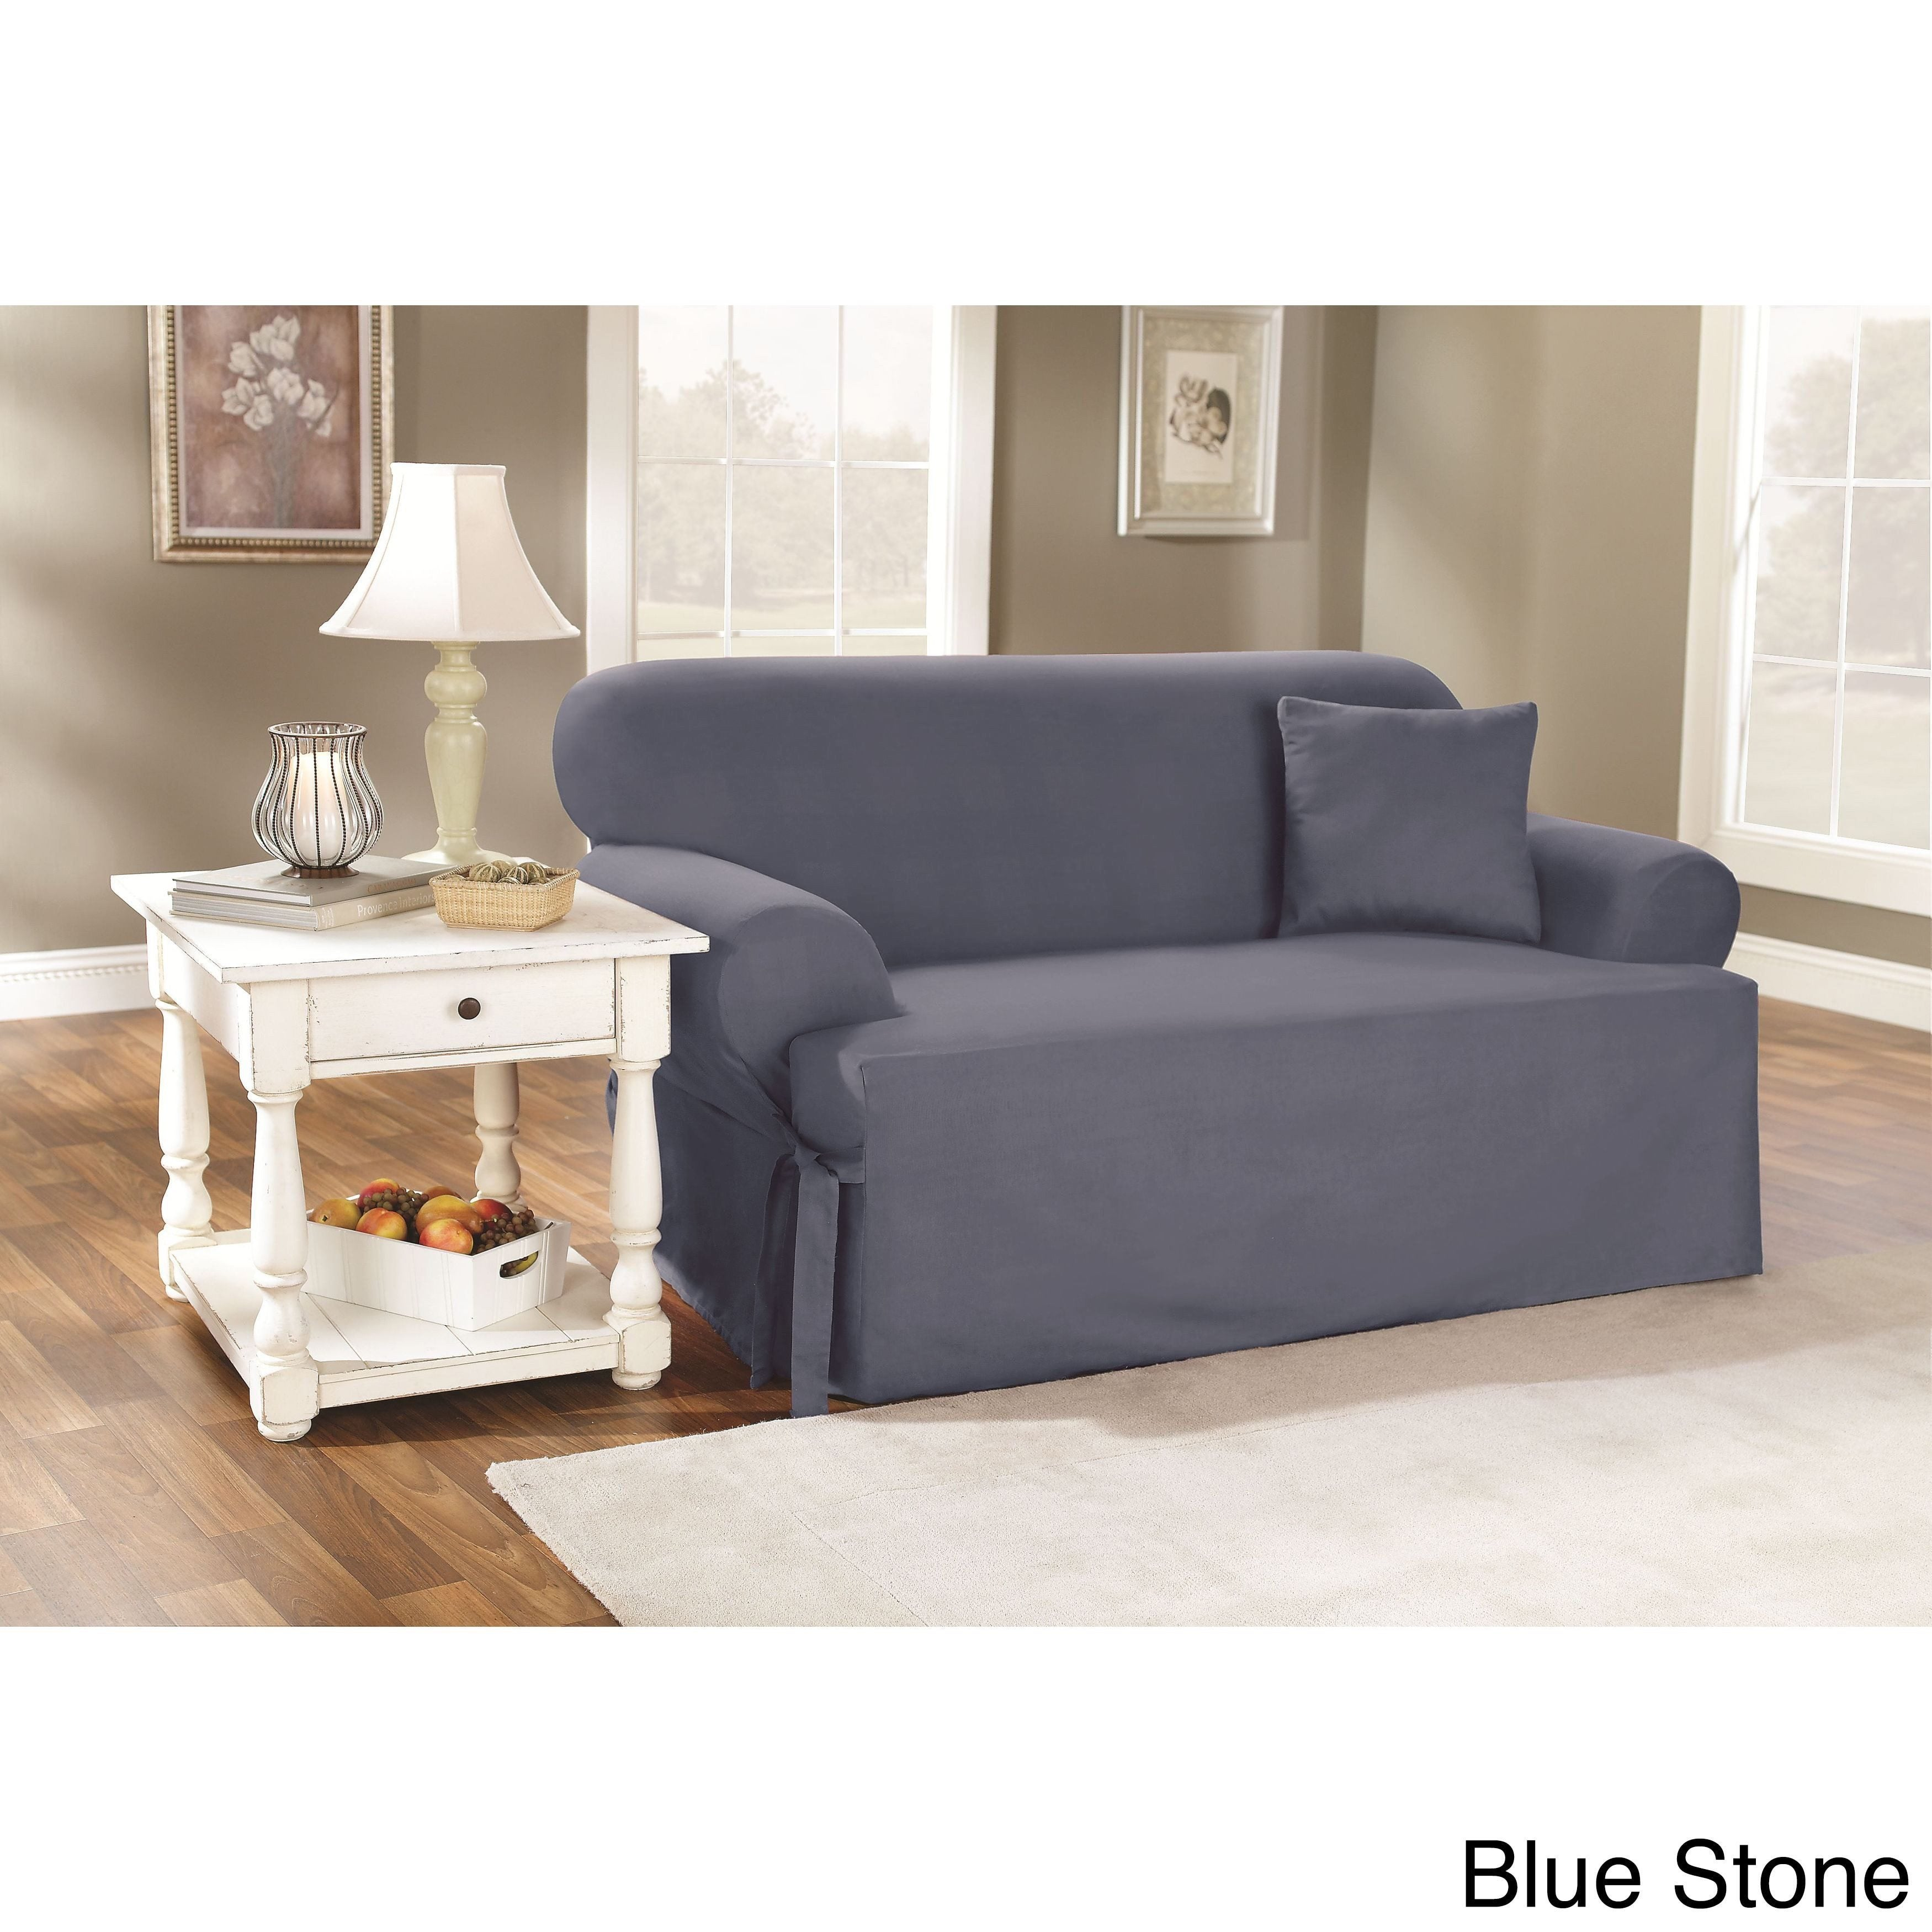 Blue Slipcovers Furniture Covers Find Great Home Decor Deals Ping At